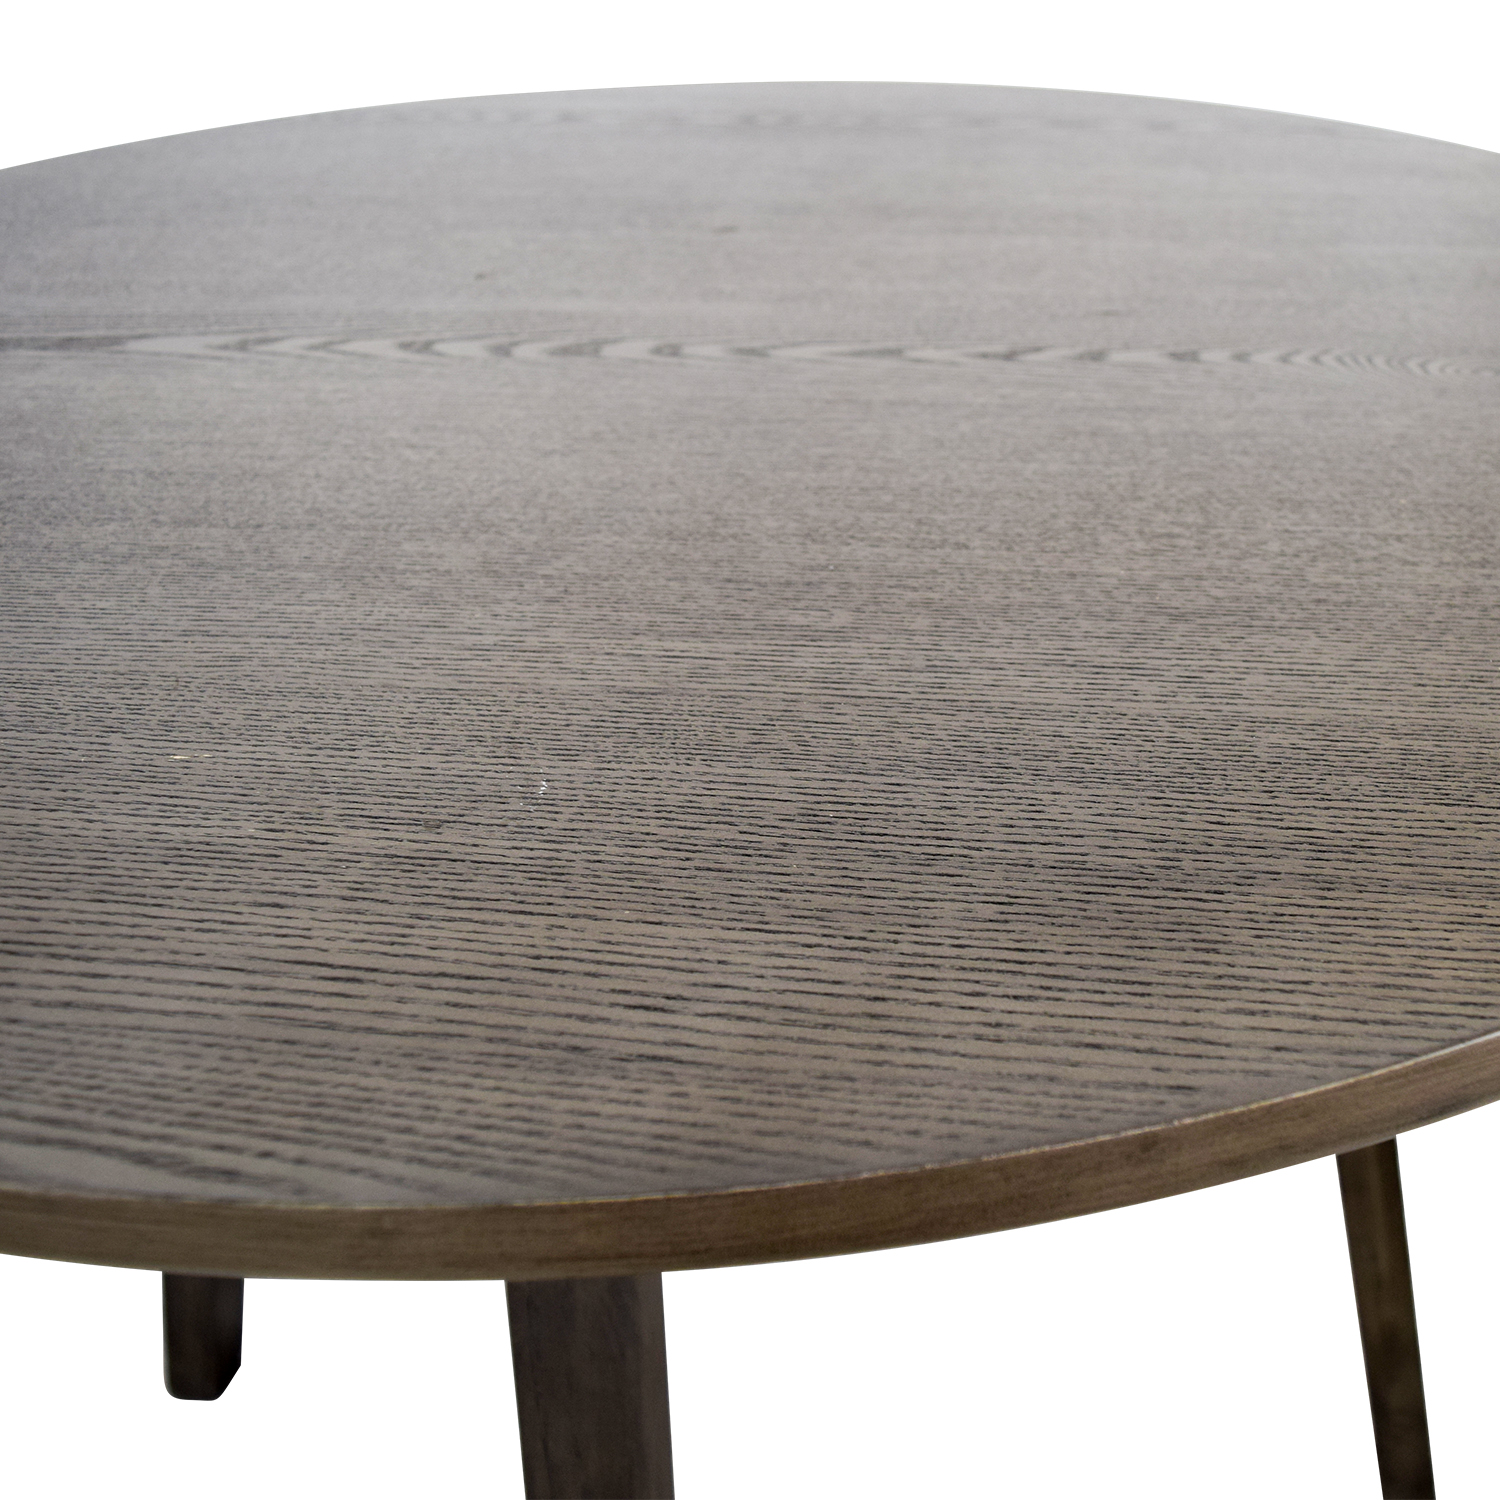 33% OFF Crate & Barrel Crate & Barrel Mid Century Dining Table